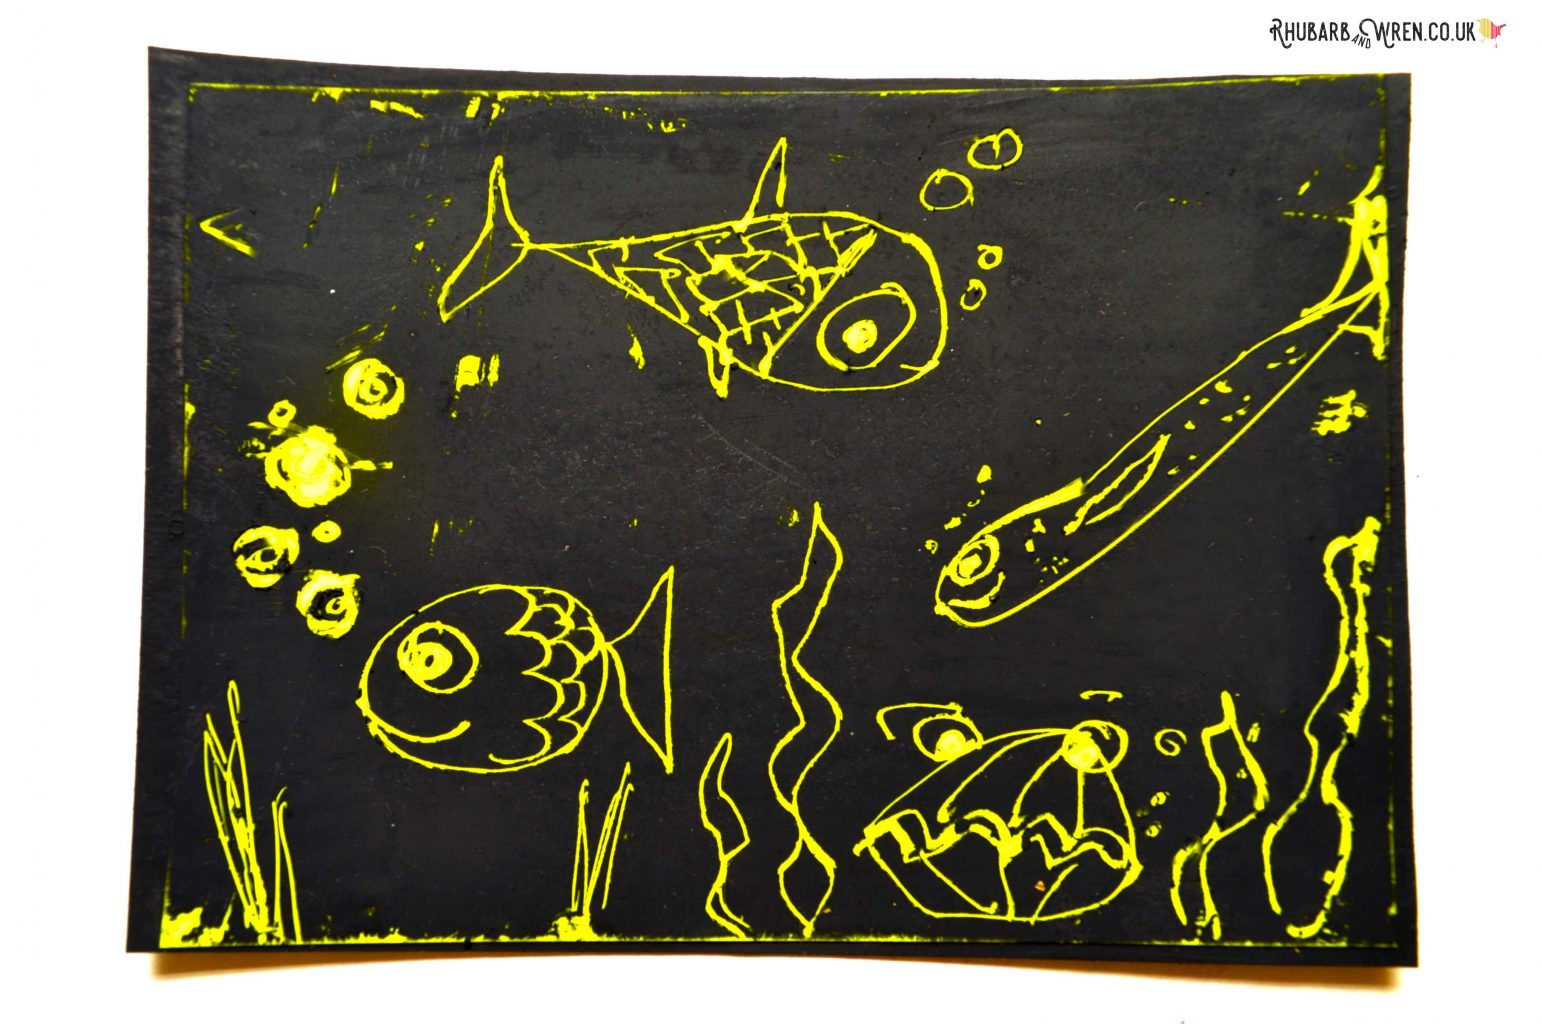 Home-made diy scratch art card made from fluorescent safety tape